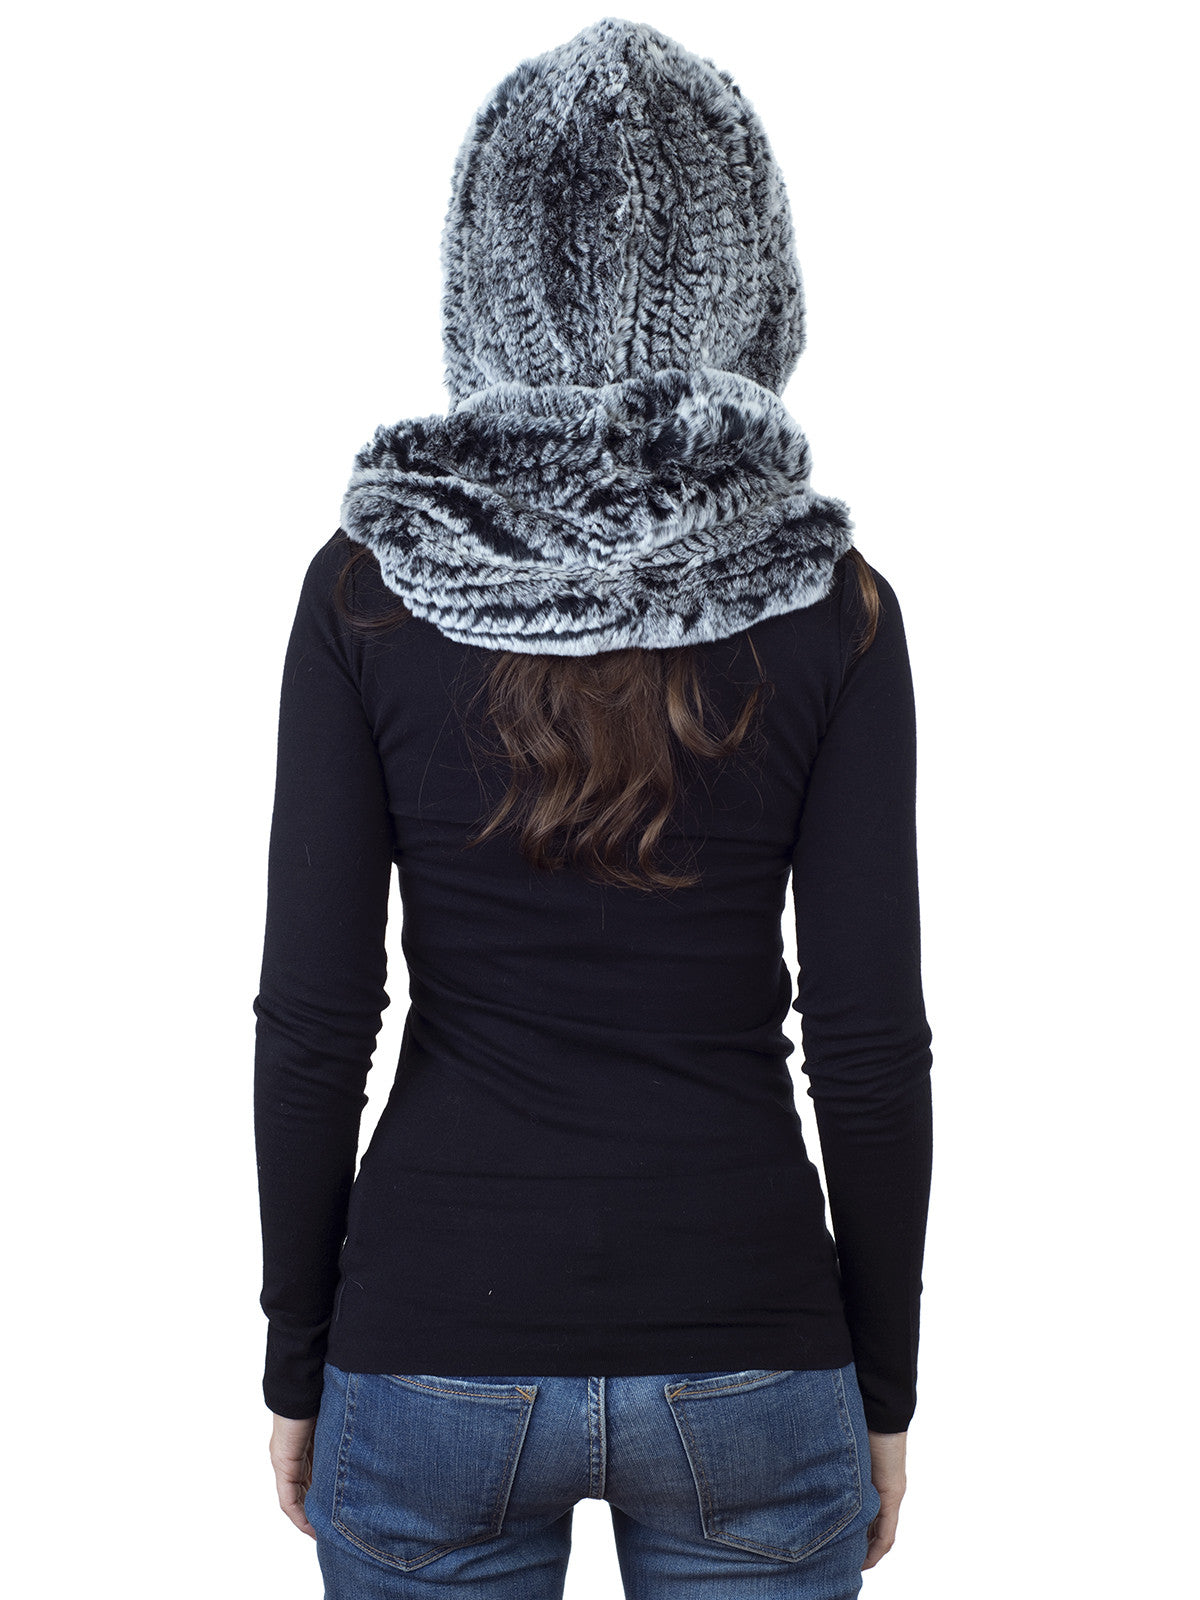 Black Frost Rex Rabbit Hood with Wide Infinity Scarf